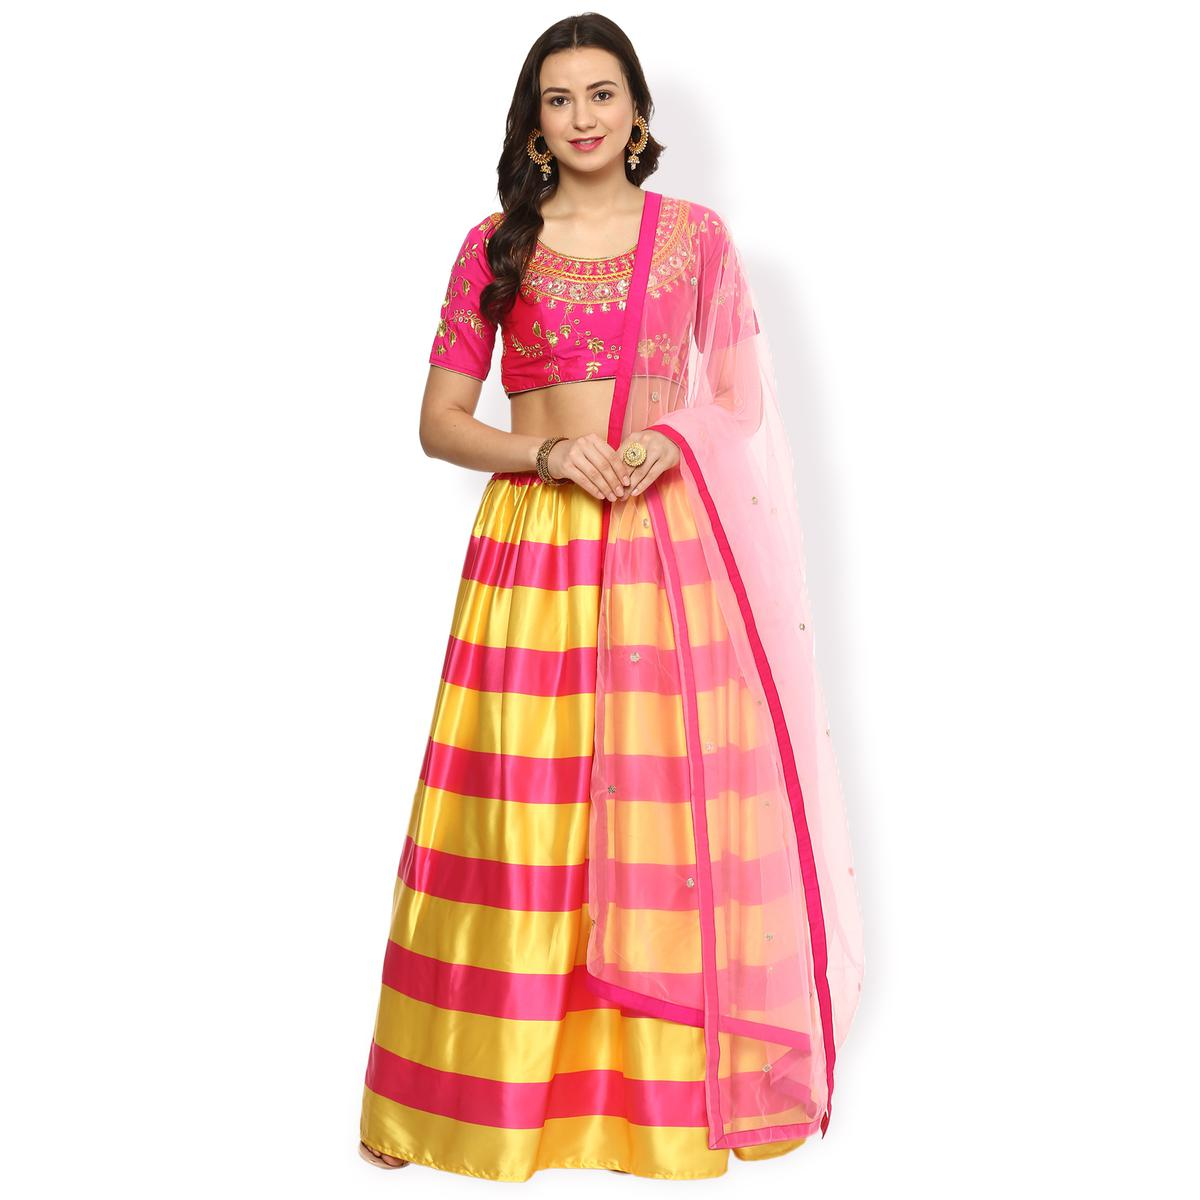 c042f9de2 Buy Alluring Yellow-Pink Designer Partywear Japan Satin Lehenga Choli for  women's online India, Best Prices, Reviews - Peachmode